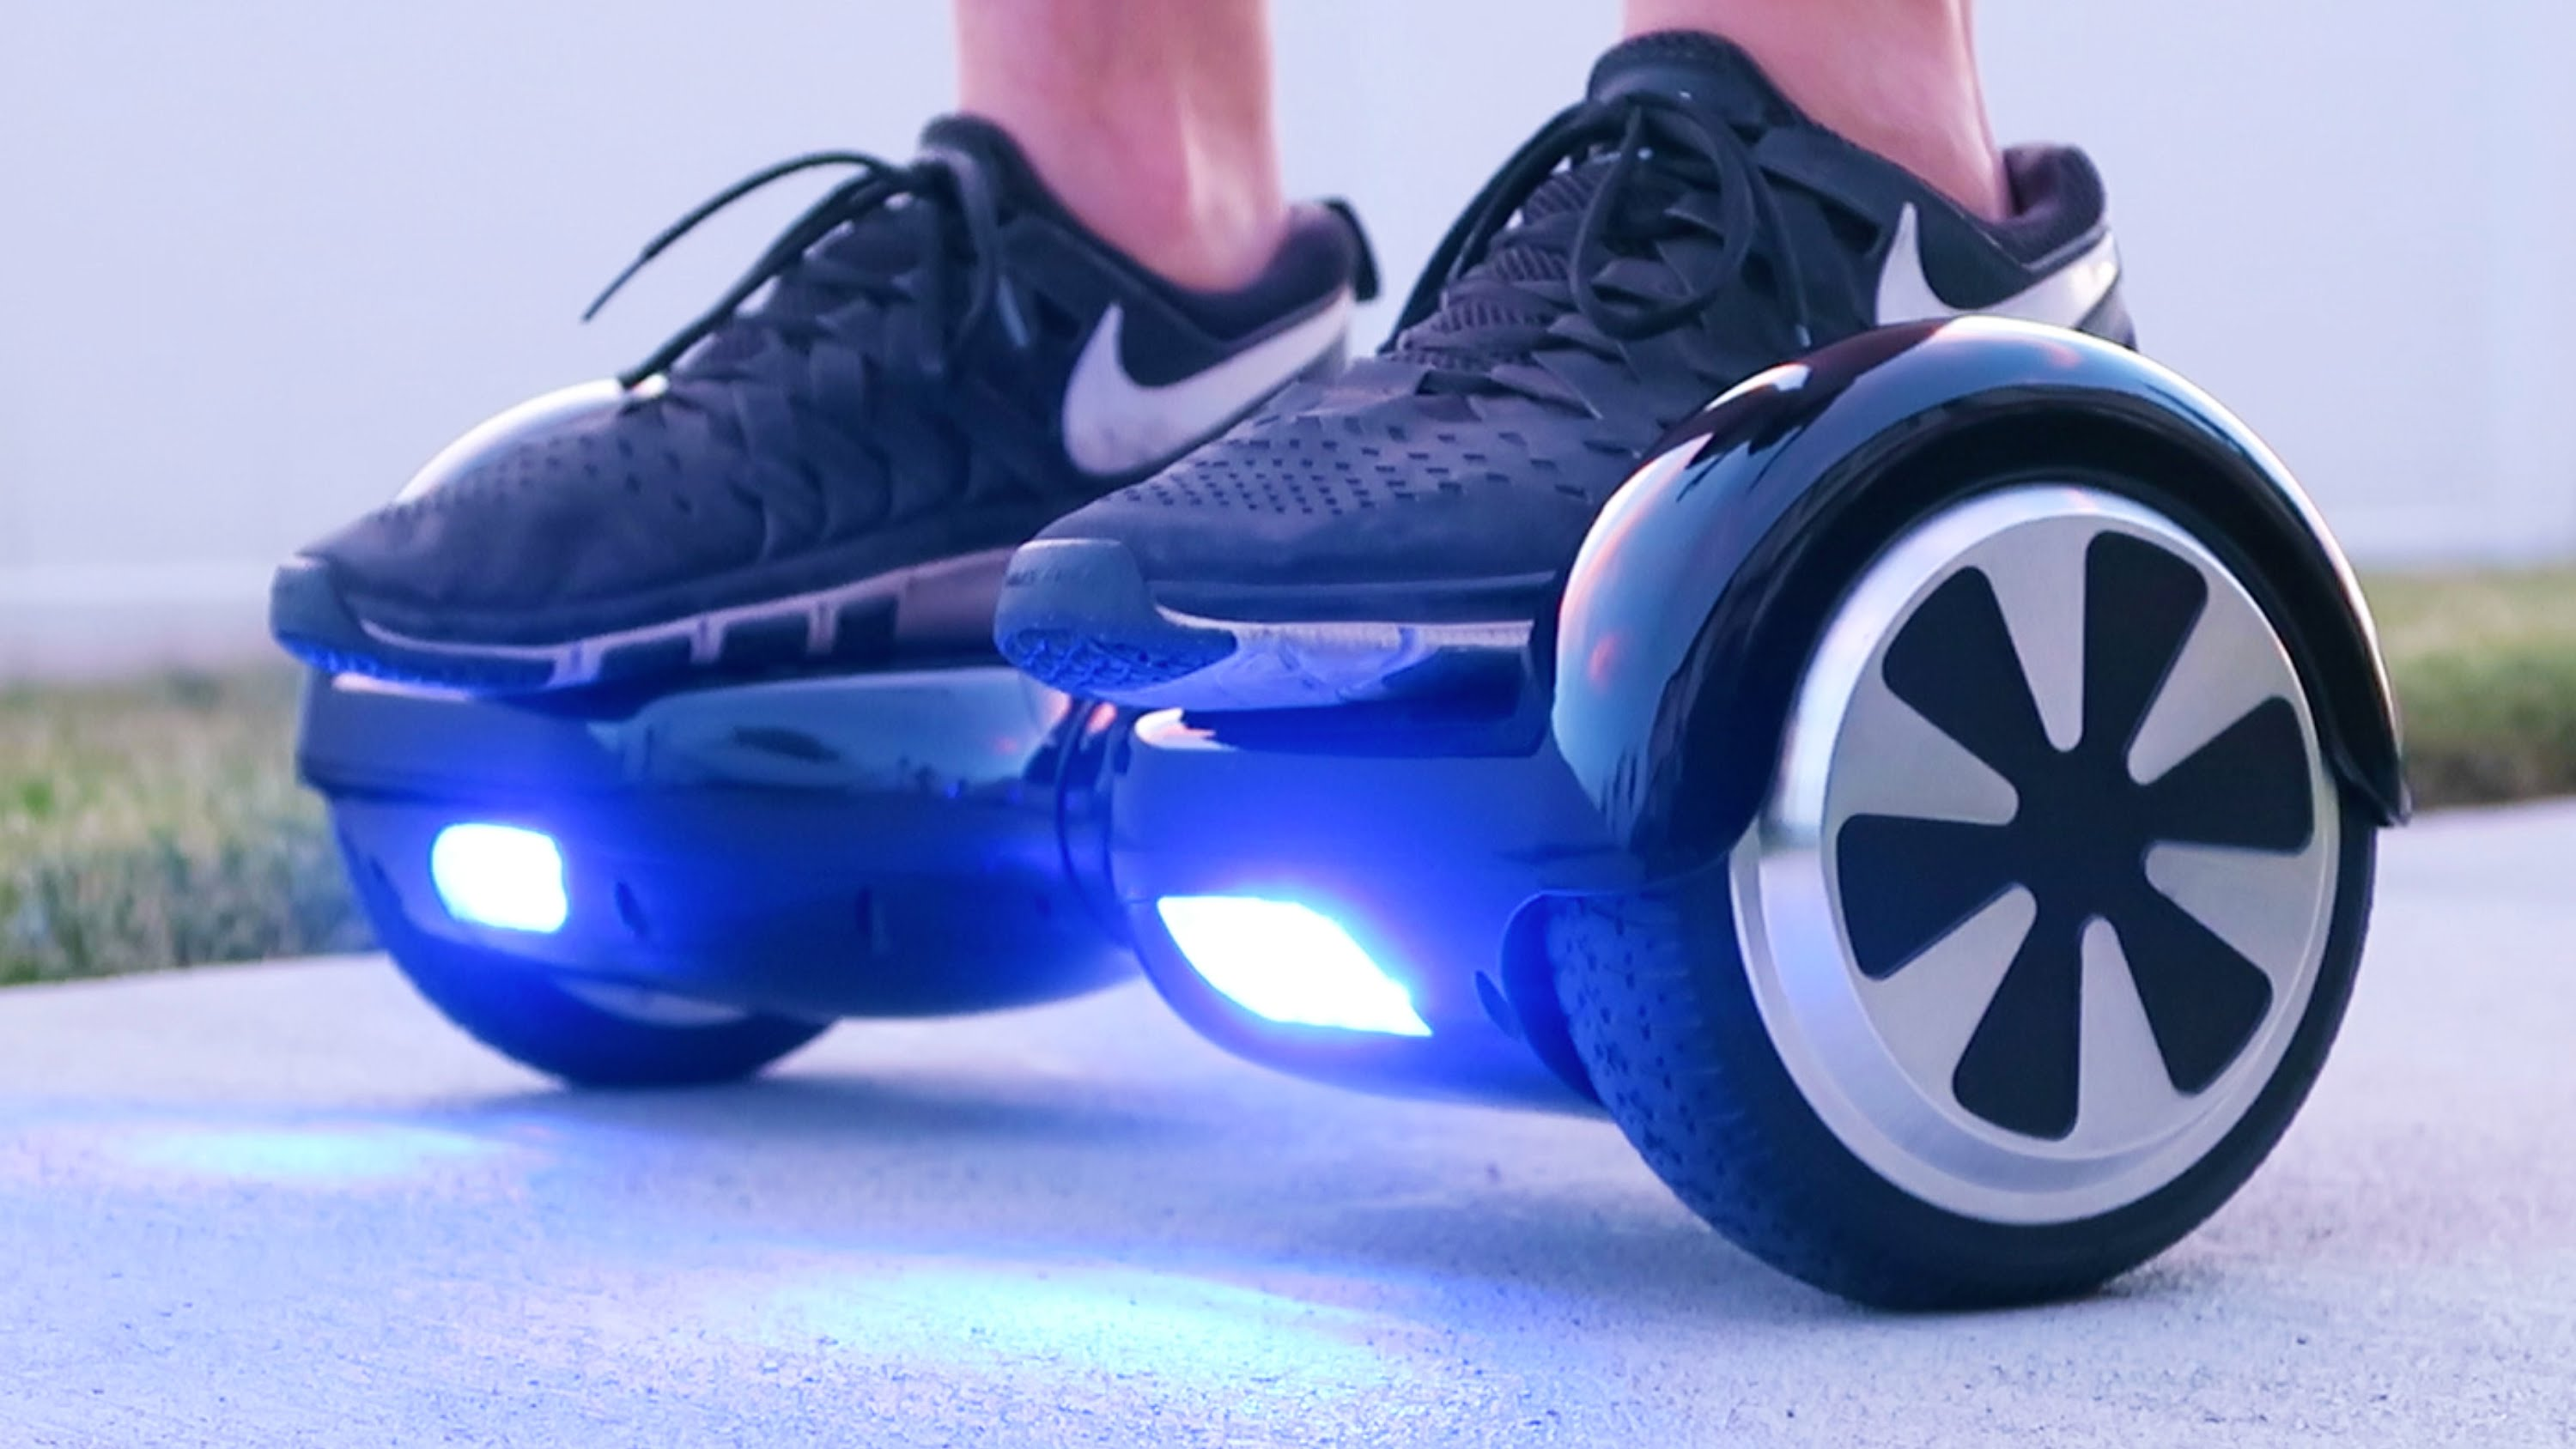 Mini segway con luces